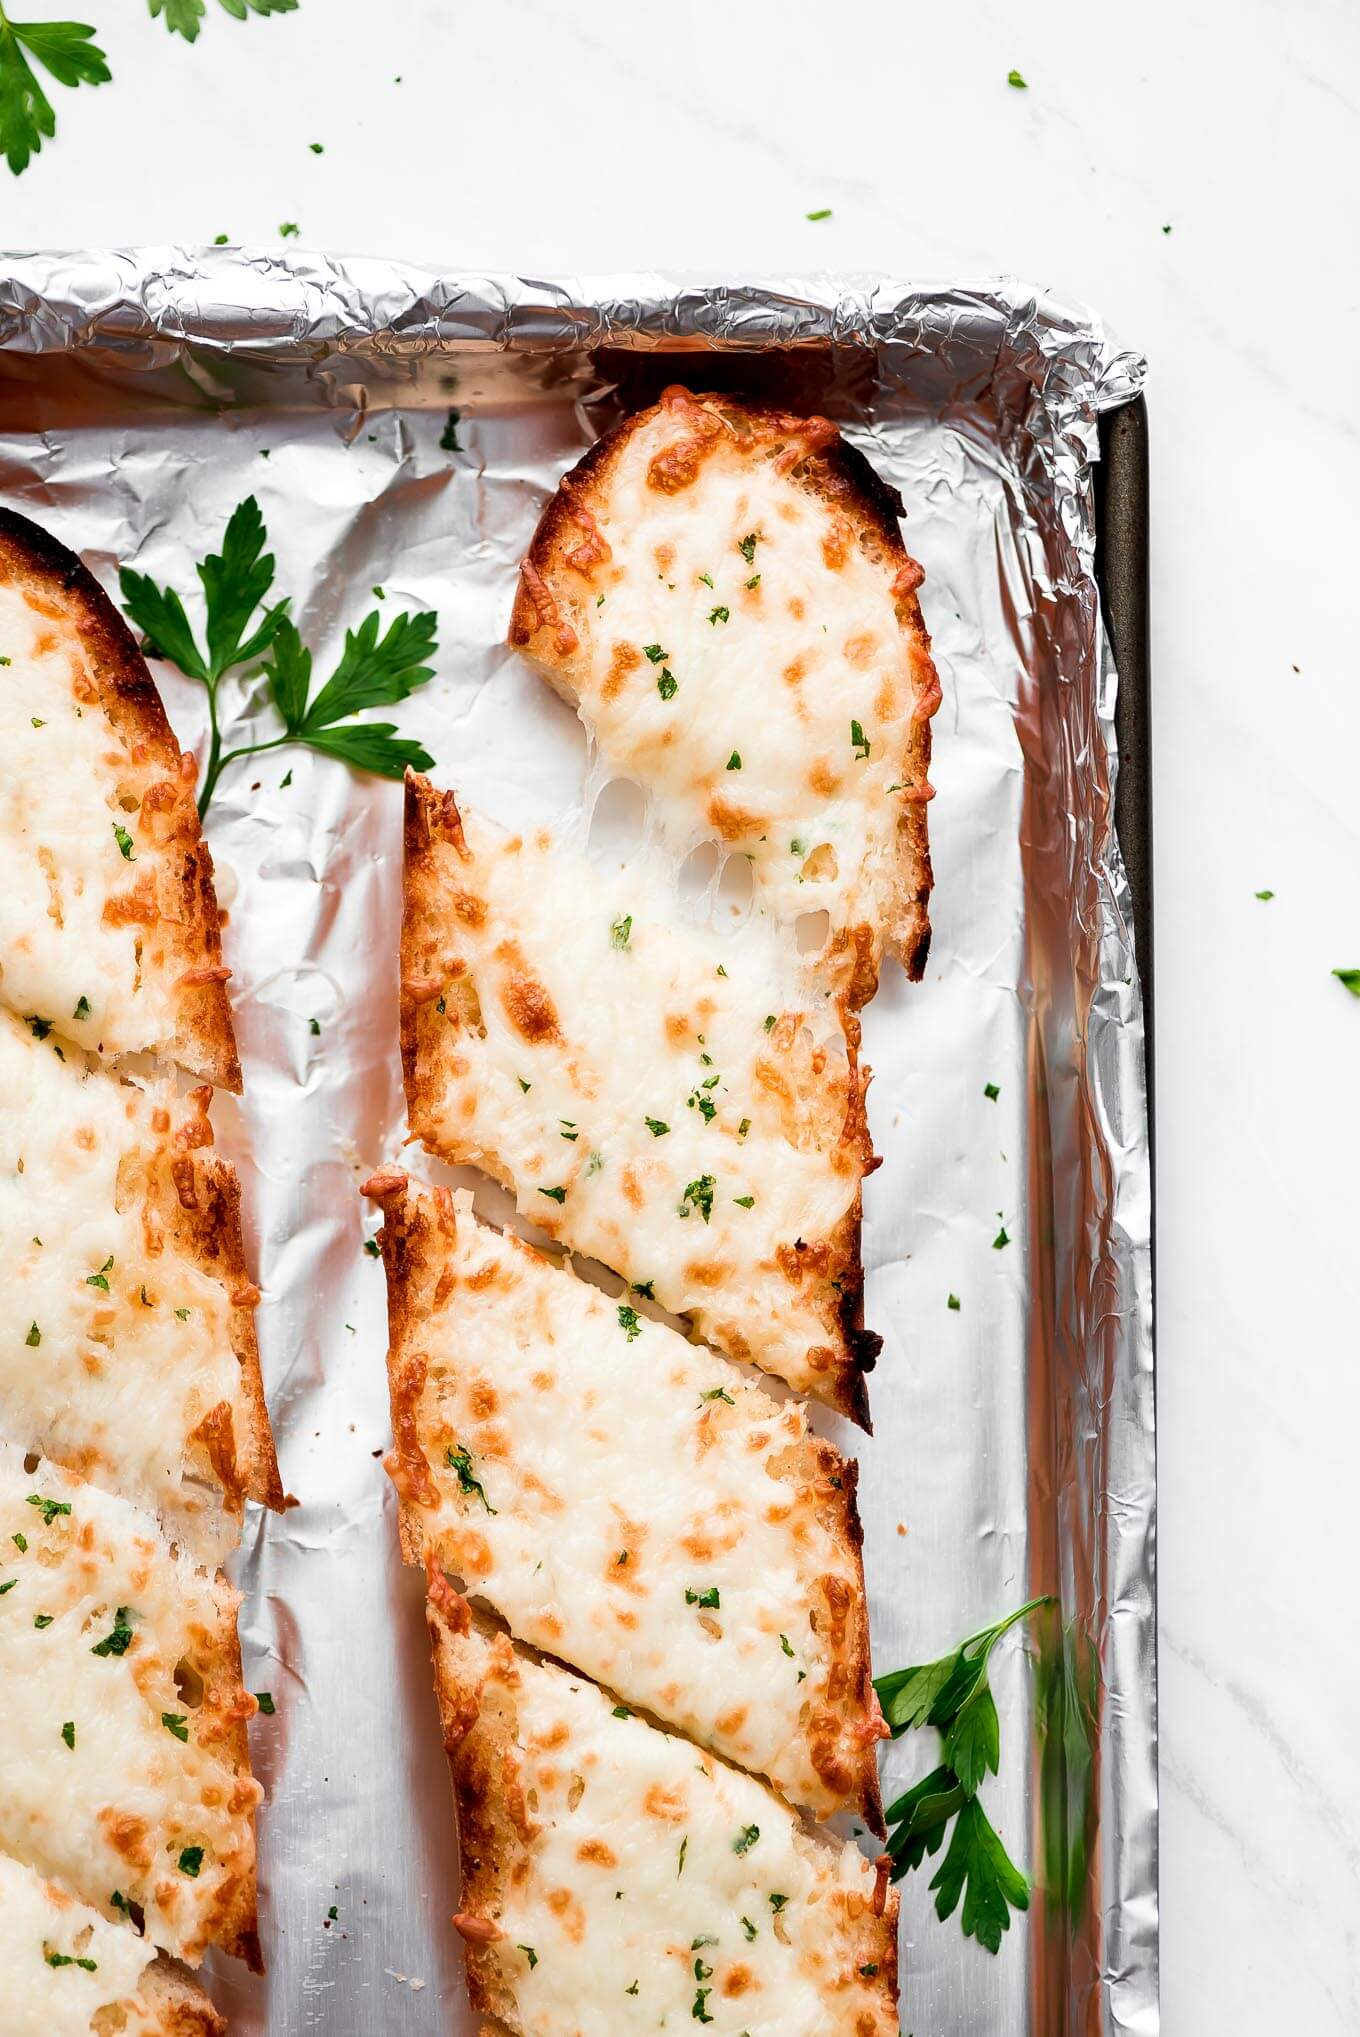 Garlic Bread on a foil lined baking sheet and sliced at an angle into individual portions.